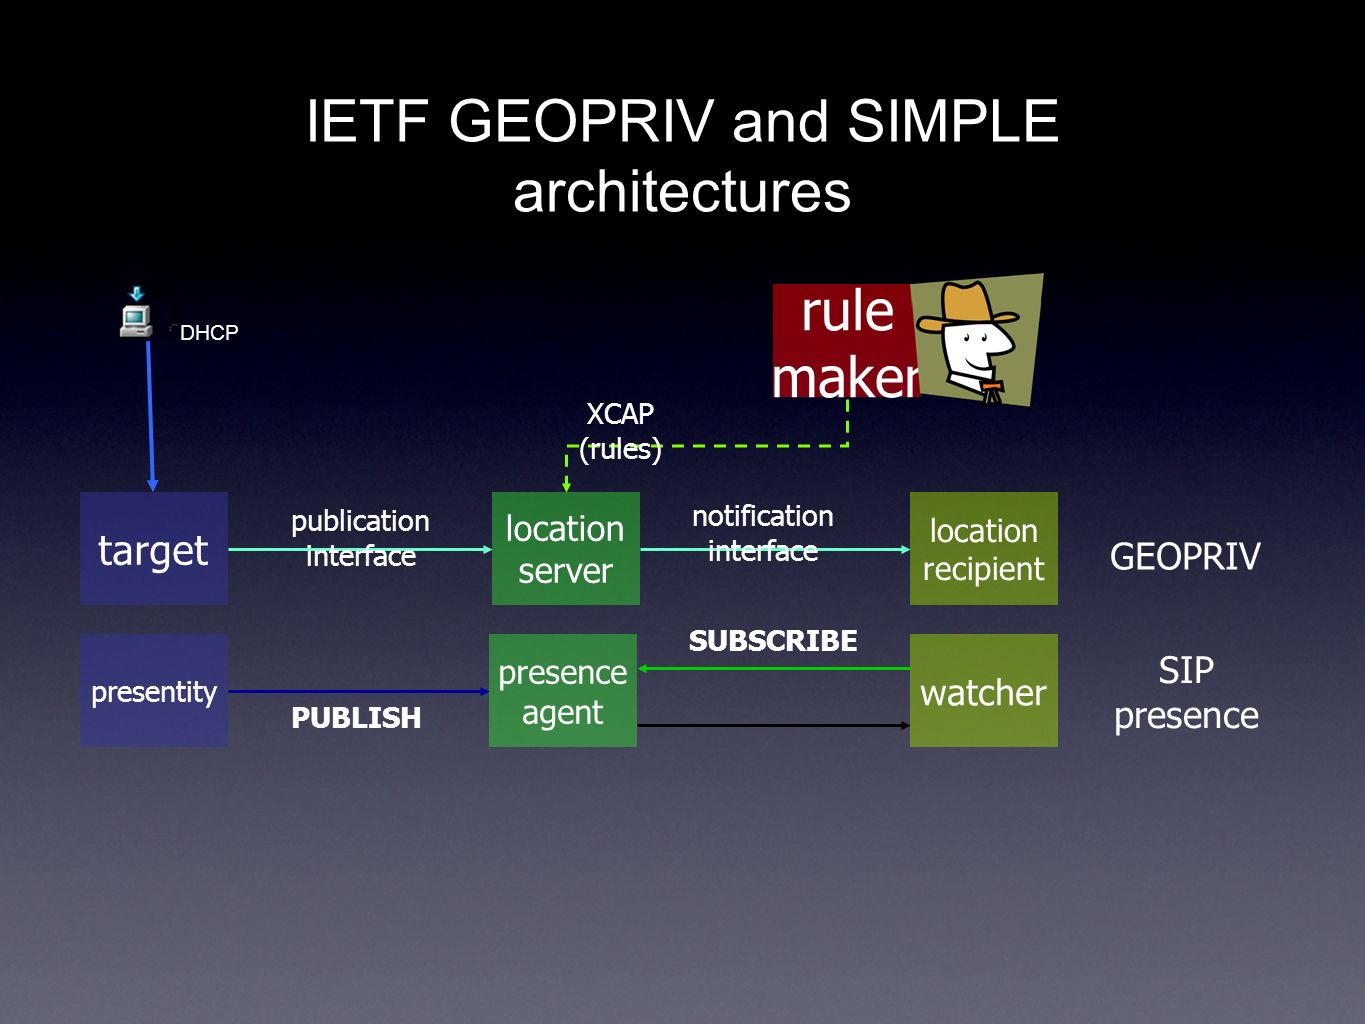 IETF GEOPRIV and SIMPLE architectures target location server location recipient rule maker presentity presence agent watcher GEOPRIV SIP presence PUBLISH SUBSCRIBE publication interface notification interface XCAP (rules) DHCP